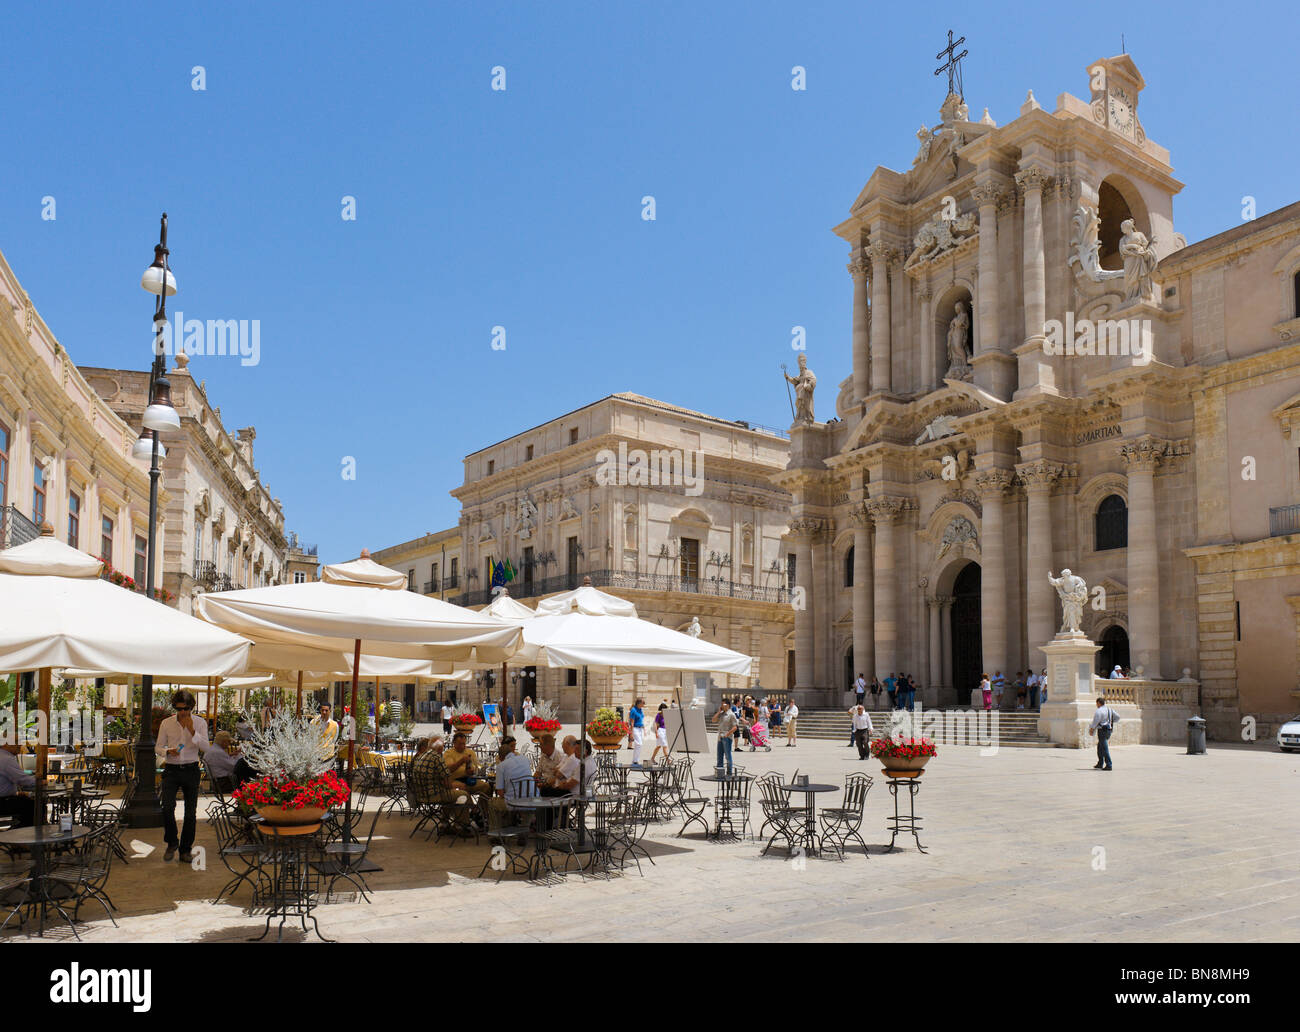 Pavement cafe in the Piazza del Duomo with the cathedral behind, Ortigia, Syracuse (Siracusa), Sicily, Italy - Stock Image